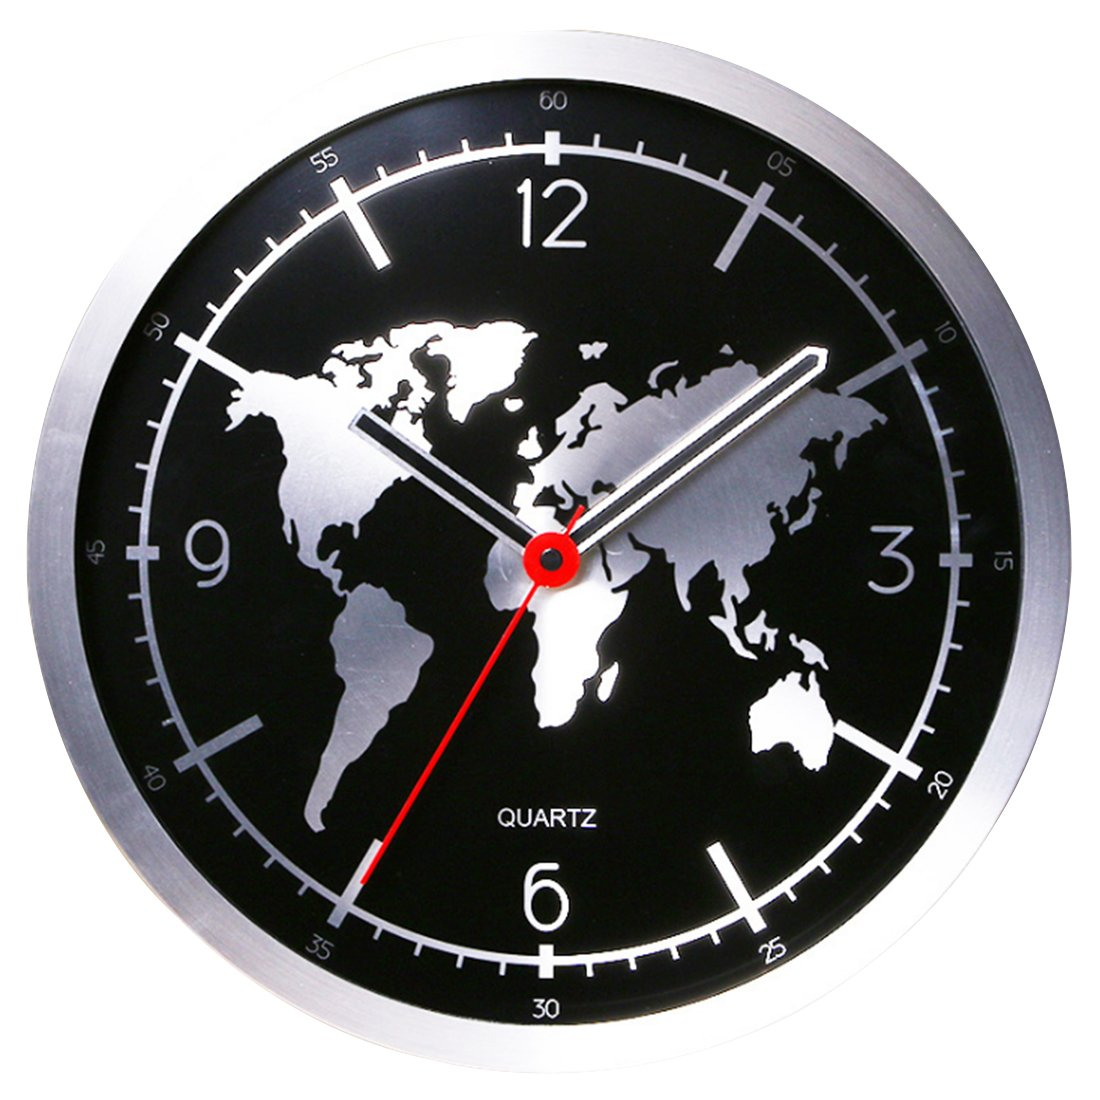 Wall Clock Black, XSHION Modern Wall Clock non Ticking 12 Inch Round Battery Operated World Map Design for Home Office Hotel School